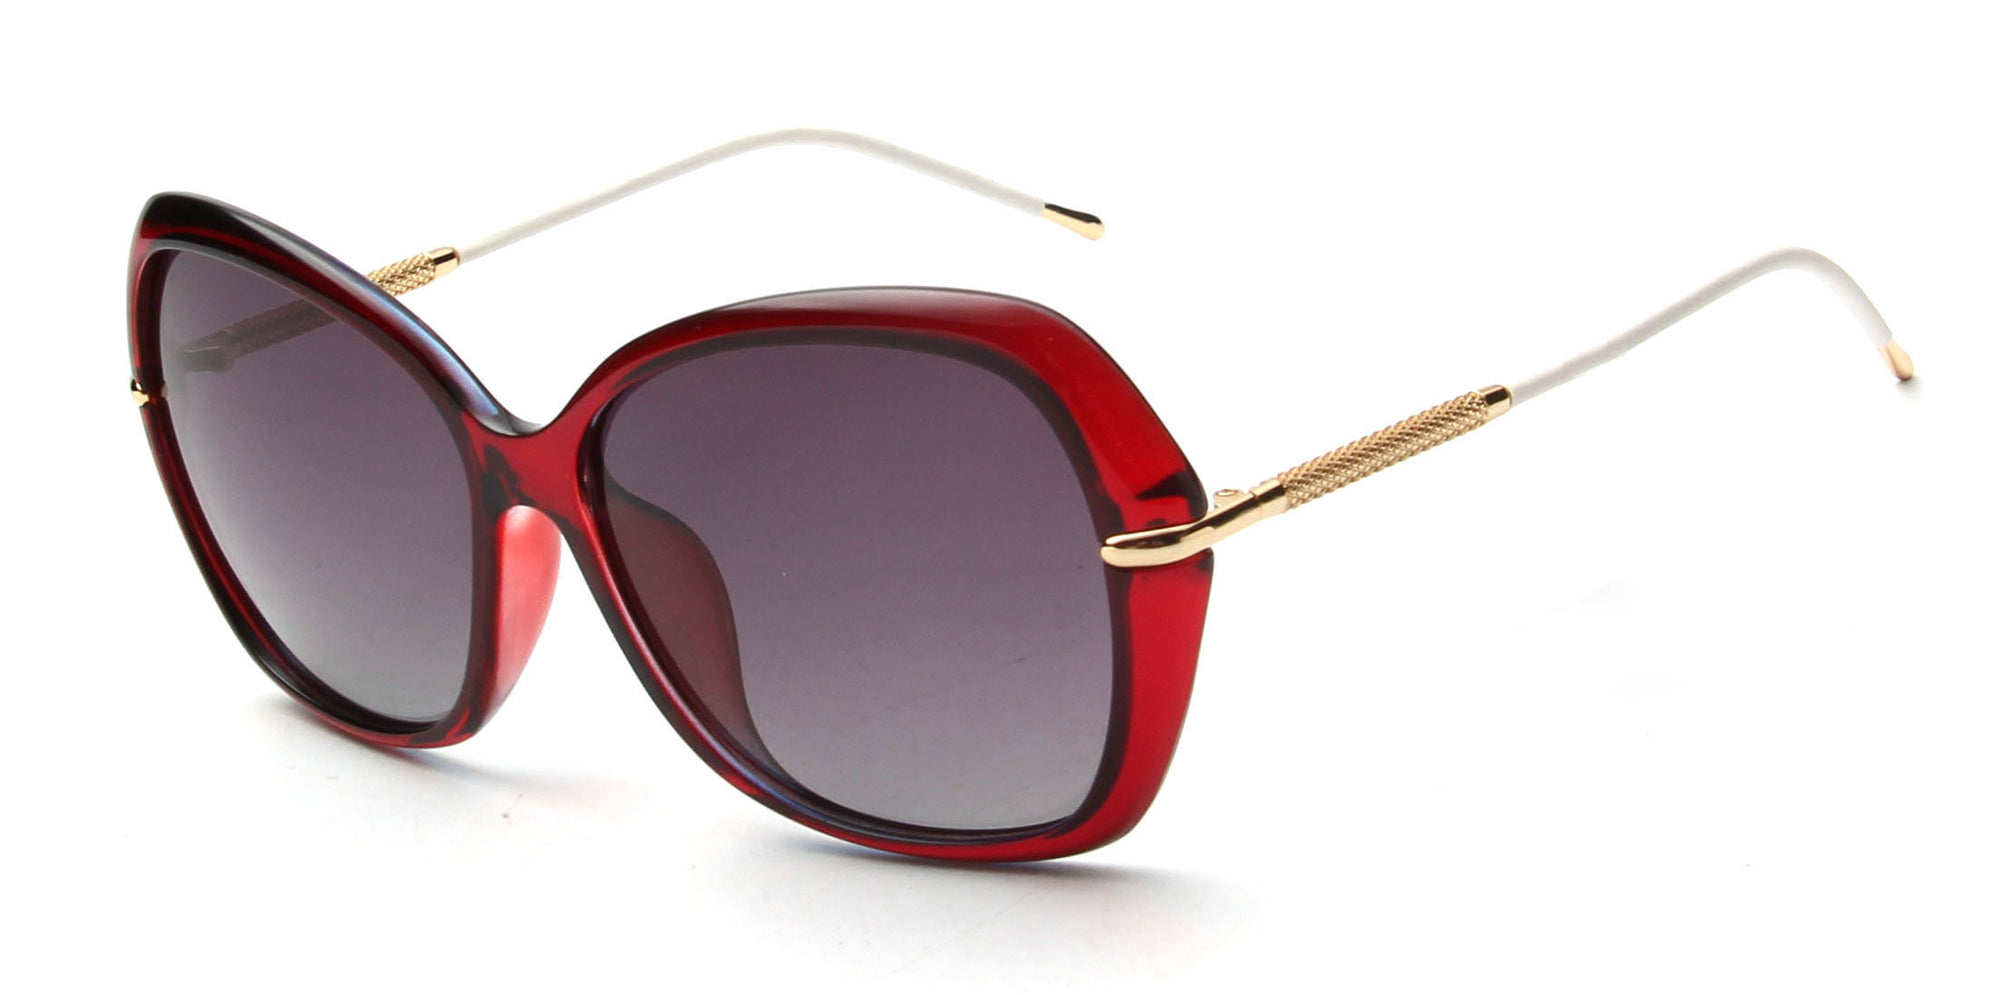 LAT-T30035 - Women Polarized Oversize Fashion Sunglasses - Wholesale Sunglasses and glasses